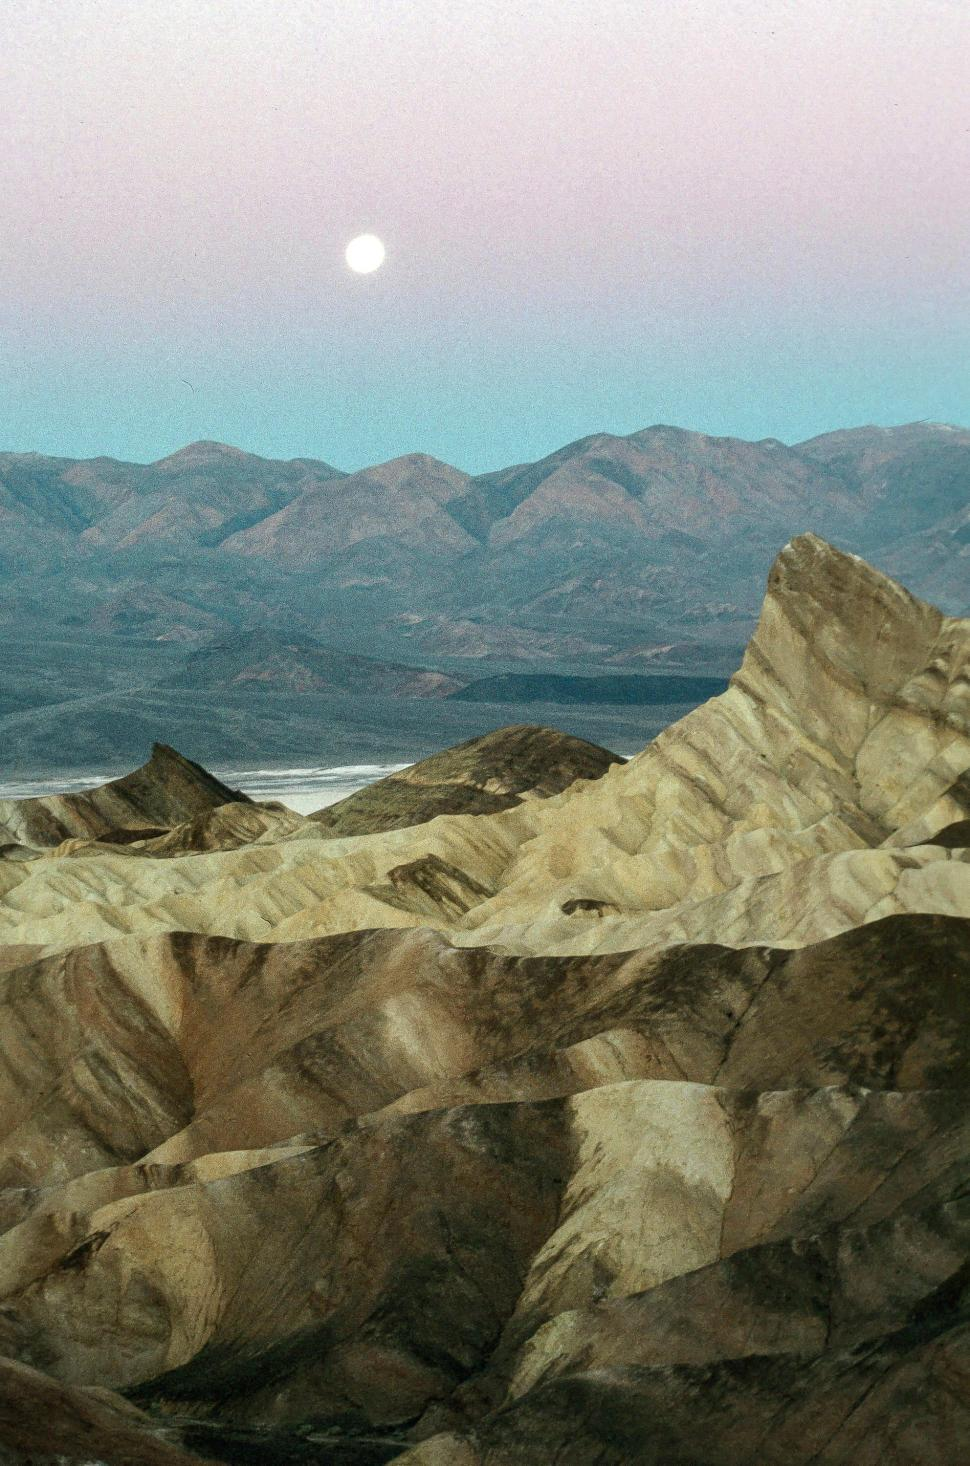 Download Free Stock HD Photo of Zabriskie Point in Death Valley National Park, California Online